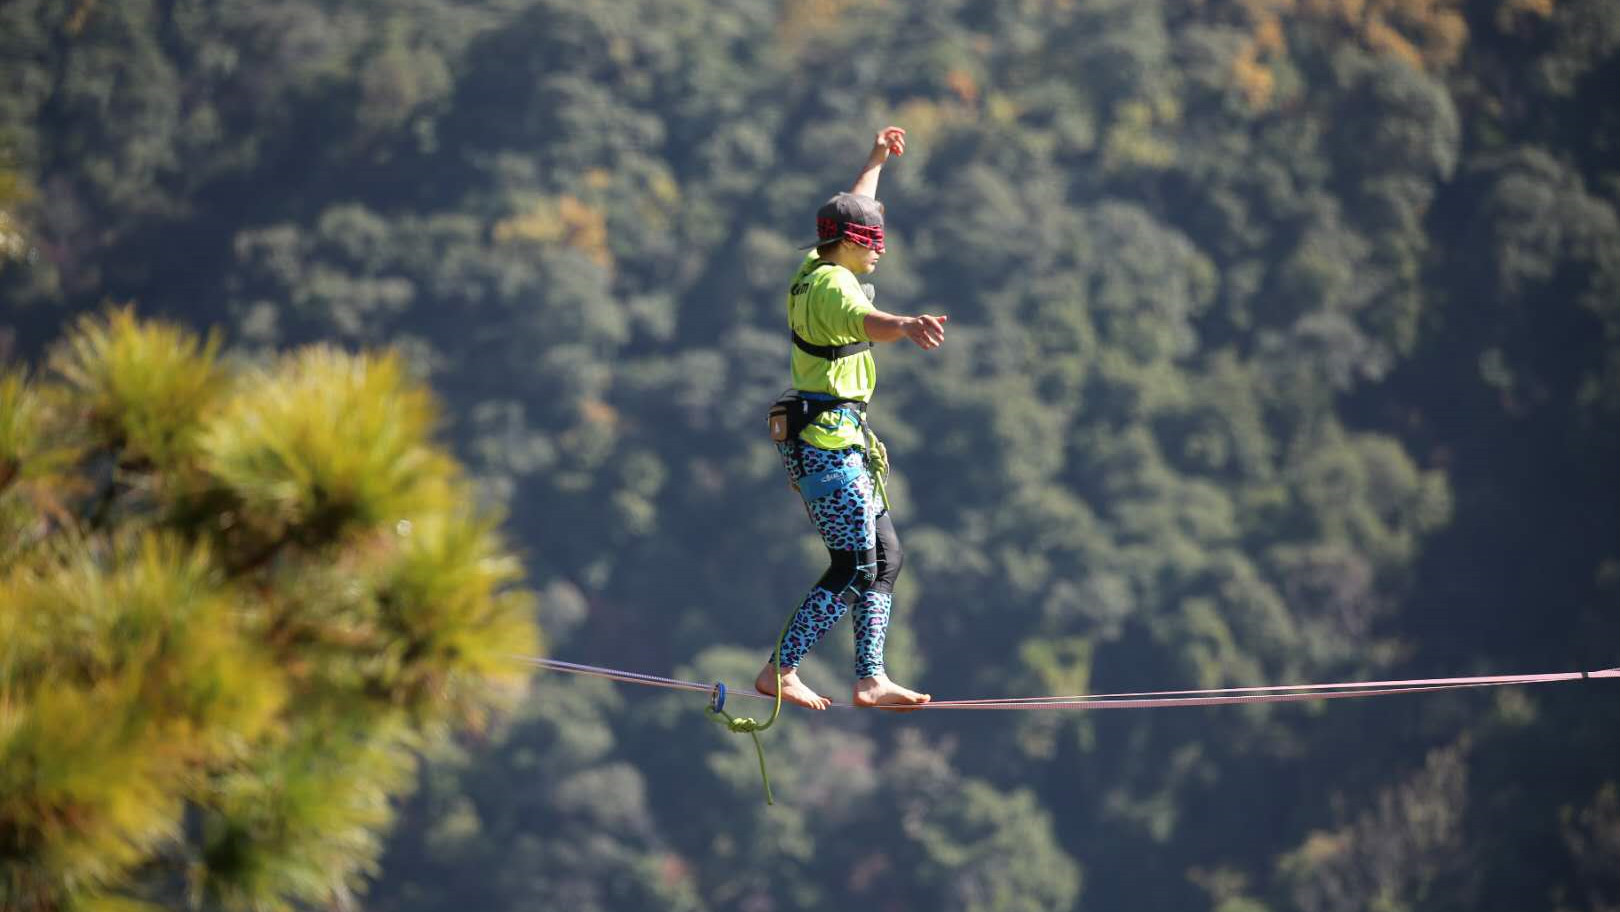 longest blindfolded slackline walk thumbnail